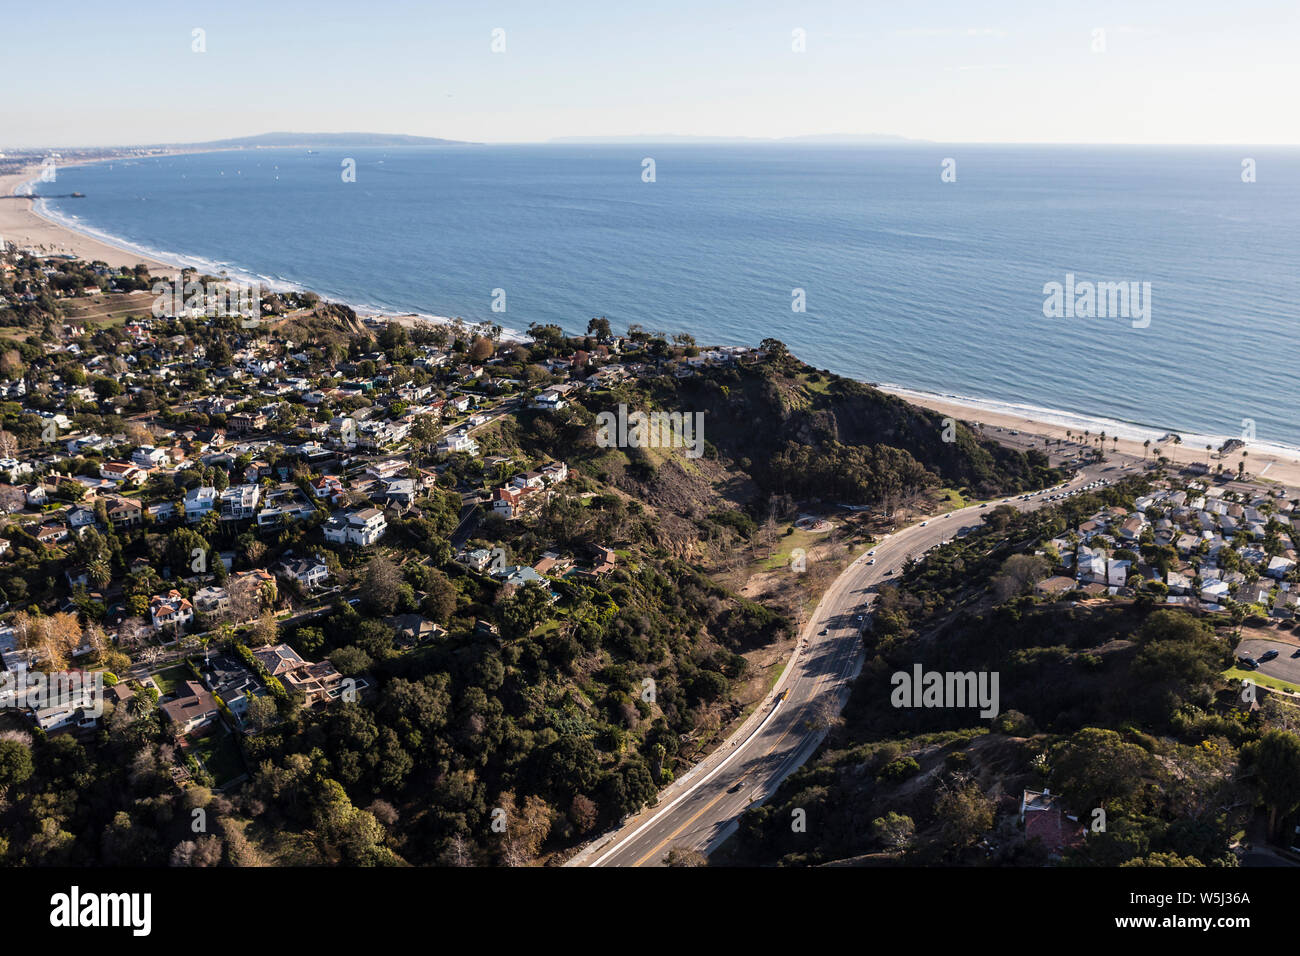 Pch Los Angeles Stock Photos & Pch Los Angeles Stock Images - Alamy